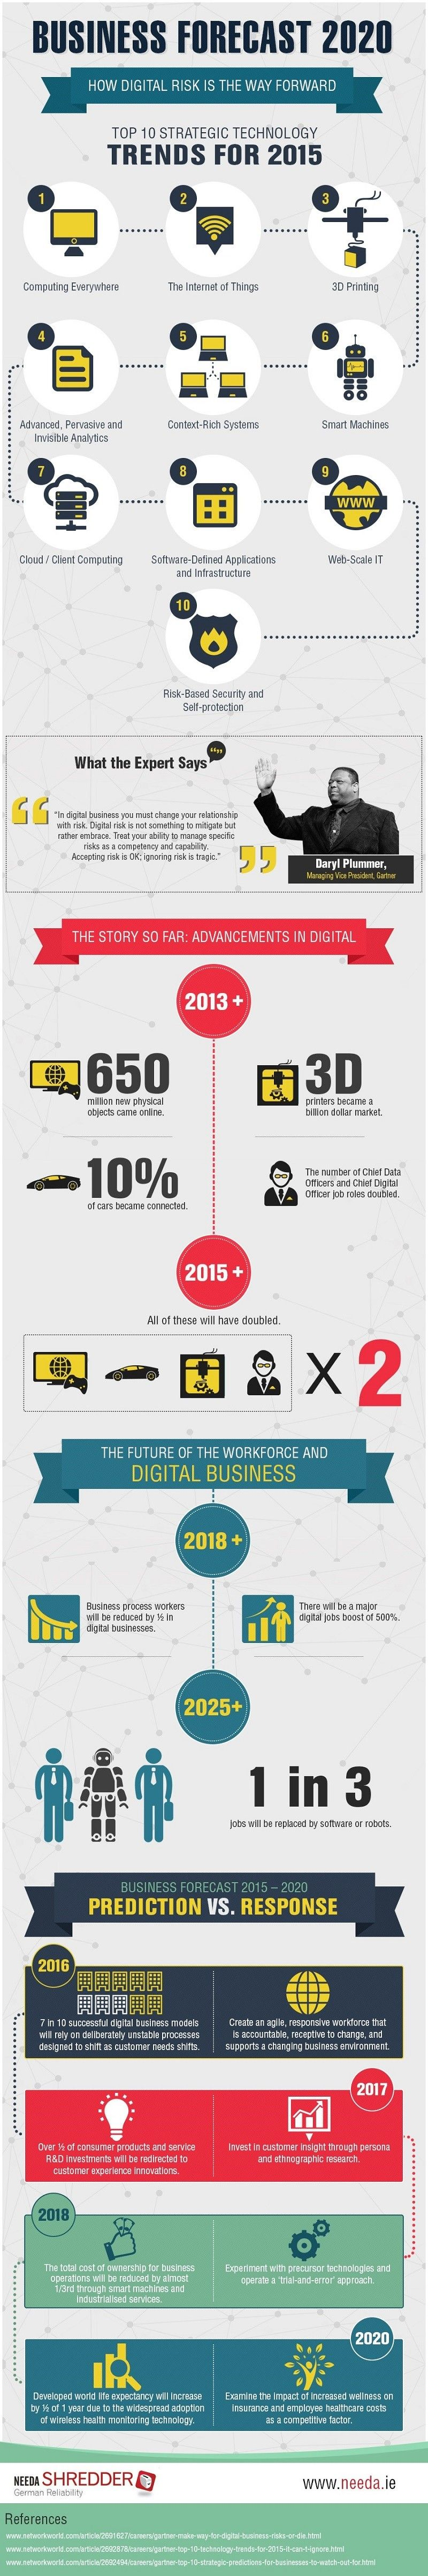 Top 3 Technology Trends Marketers Should Watch In 2015 - # ...  |Top Business Trends 2015